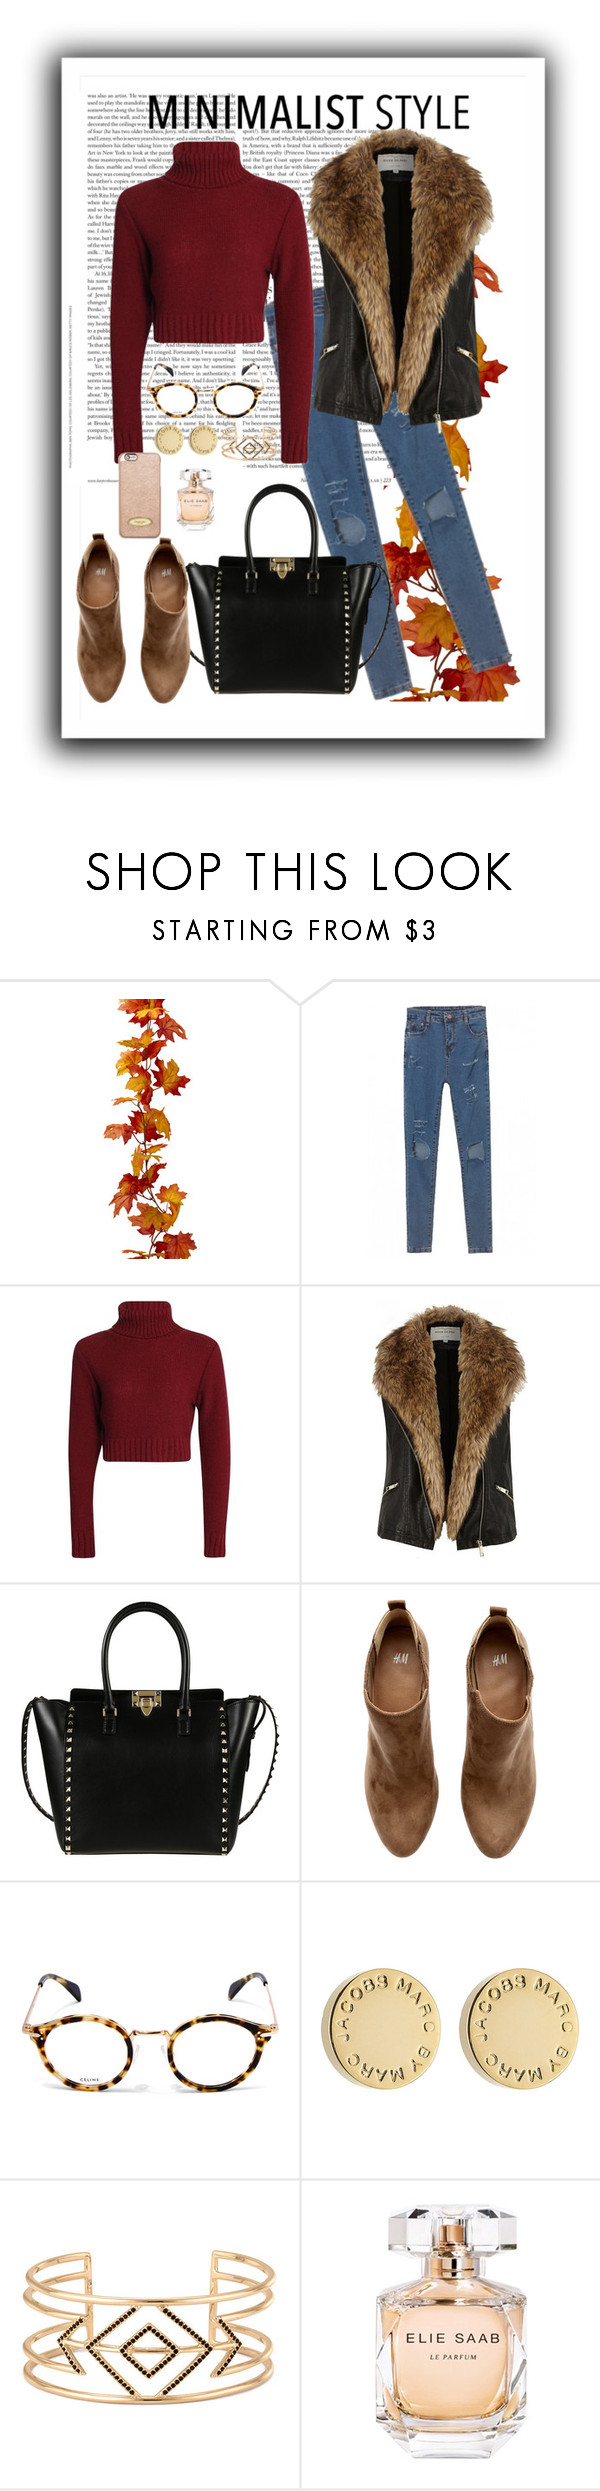 """Untitled #666"" by find-your-own-style ❤ liked on Polyvore featuring River Island, Valentino, H&M, CÉLINE, Marc by Marc Jacobs, Stella & Dot, Elie Saab and MICHAEL Michael Kors"